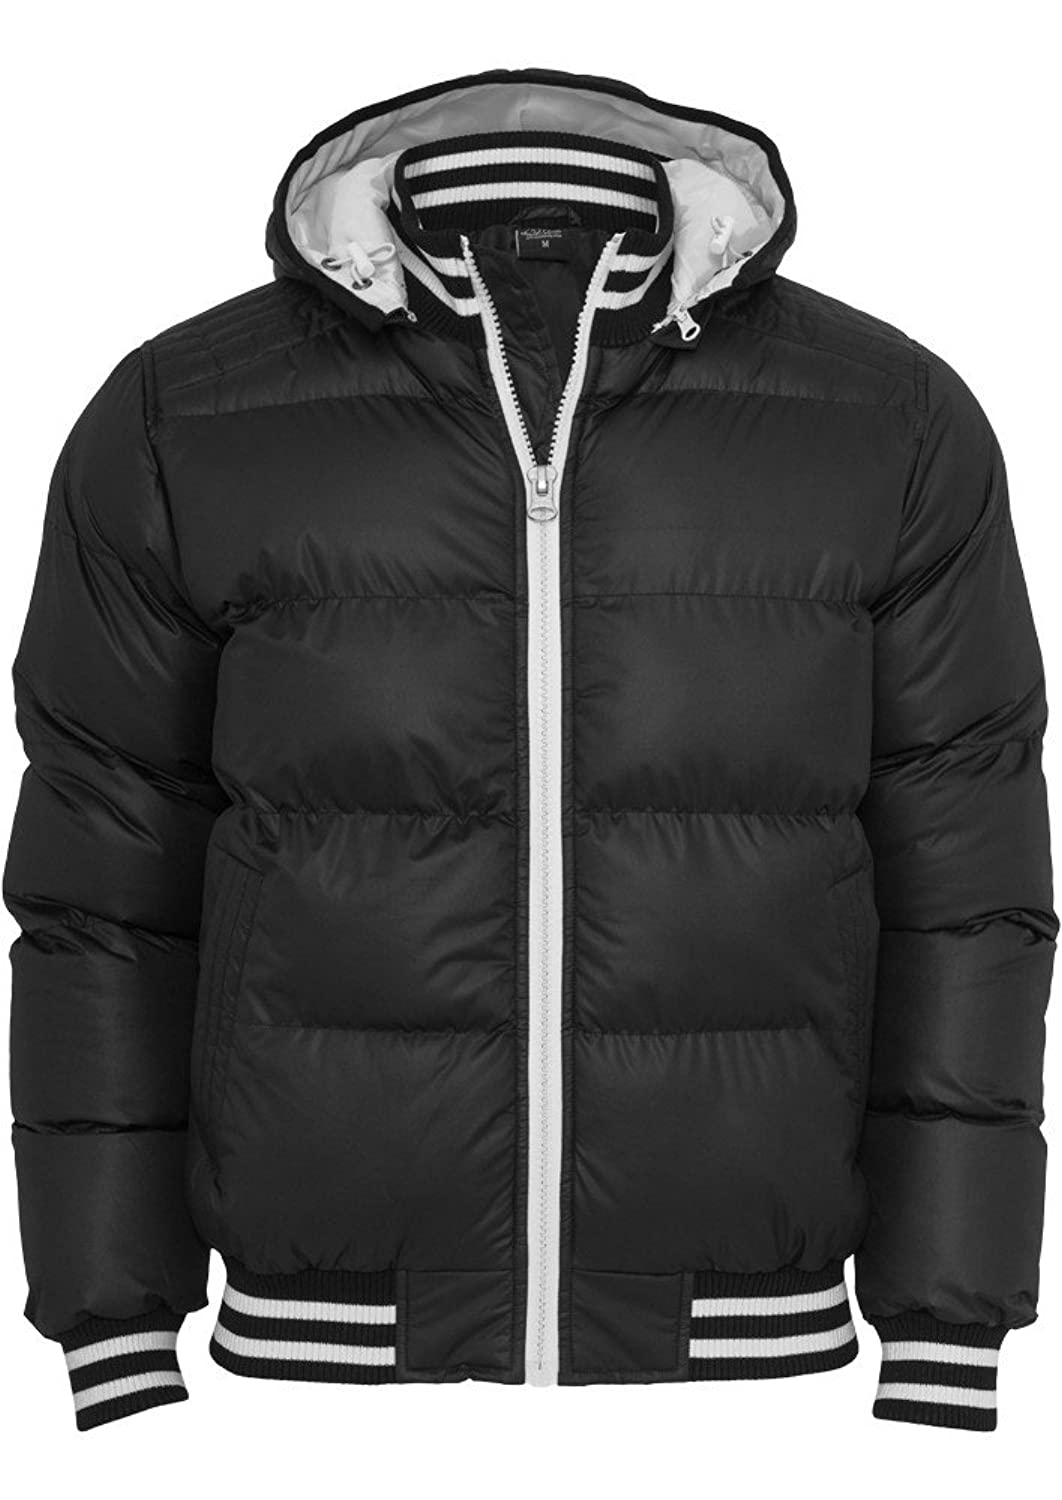 URBAN CLASSICS Hooded College Bubble Jacket, black